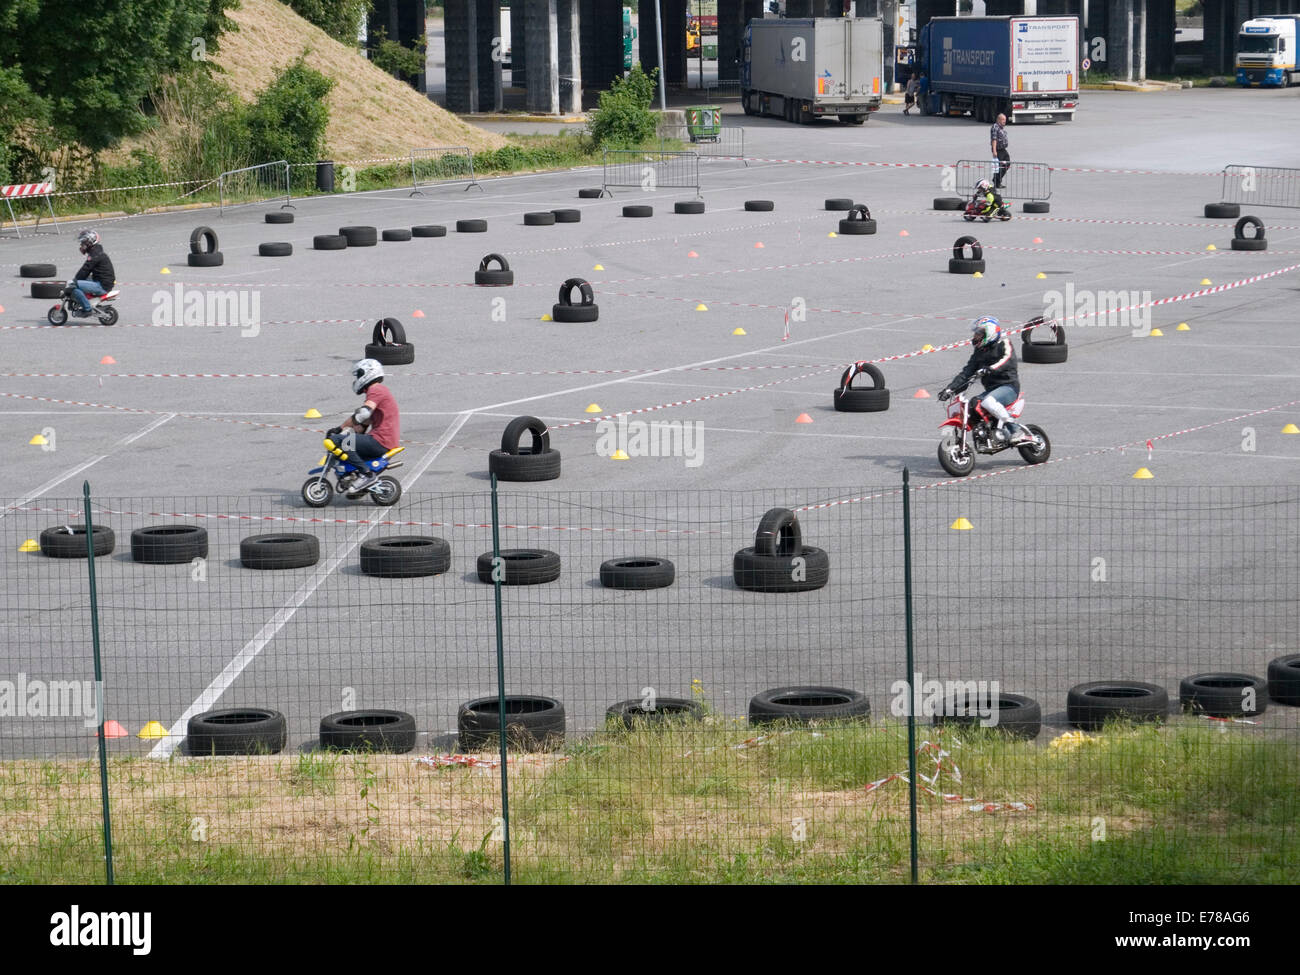 minibikes in parking lot, Italy - Stock Image